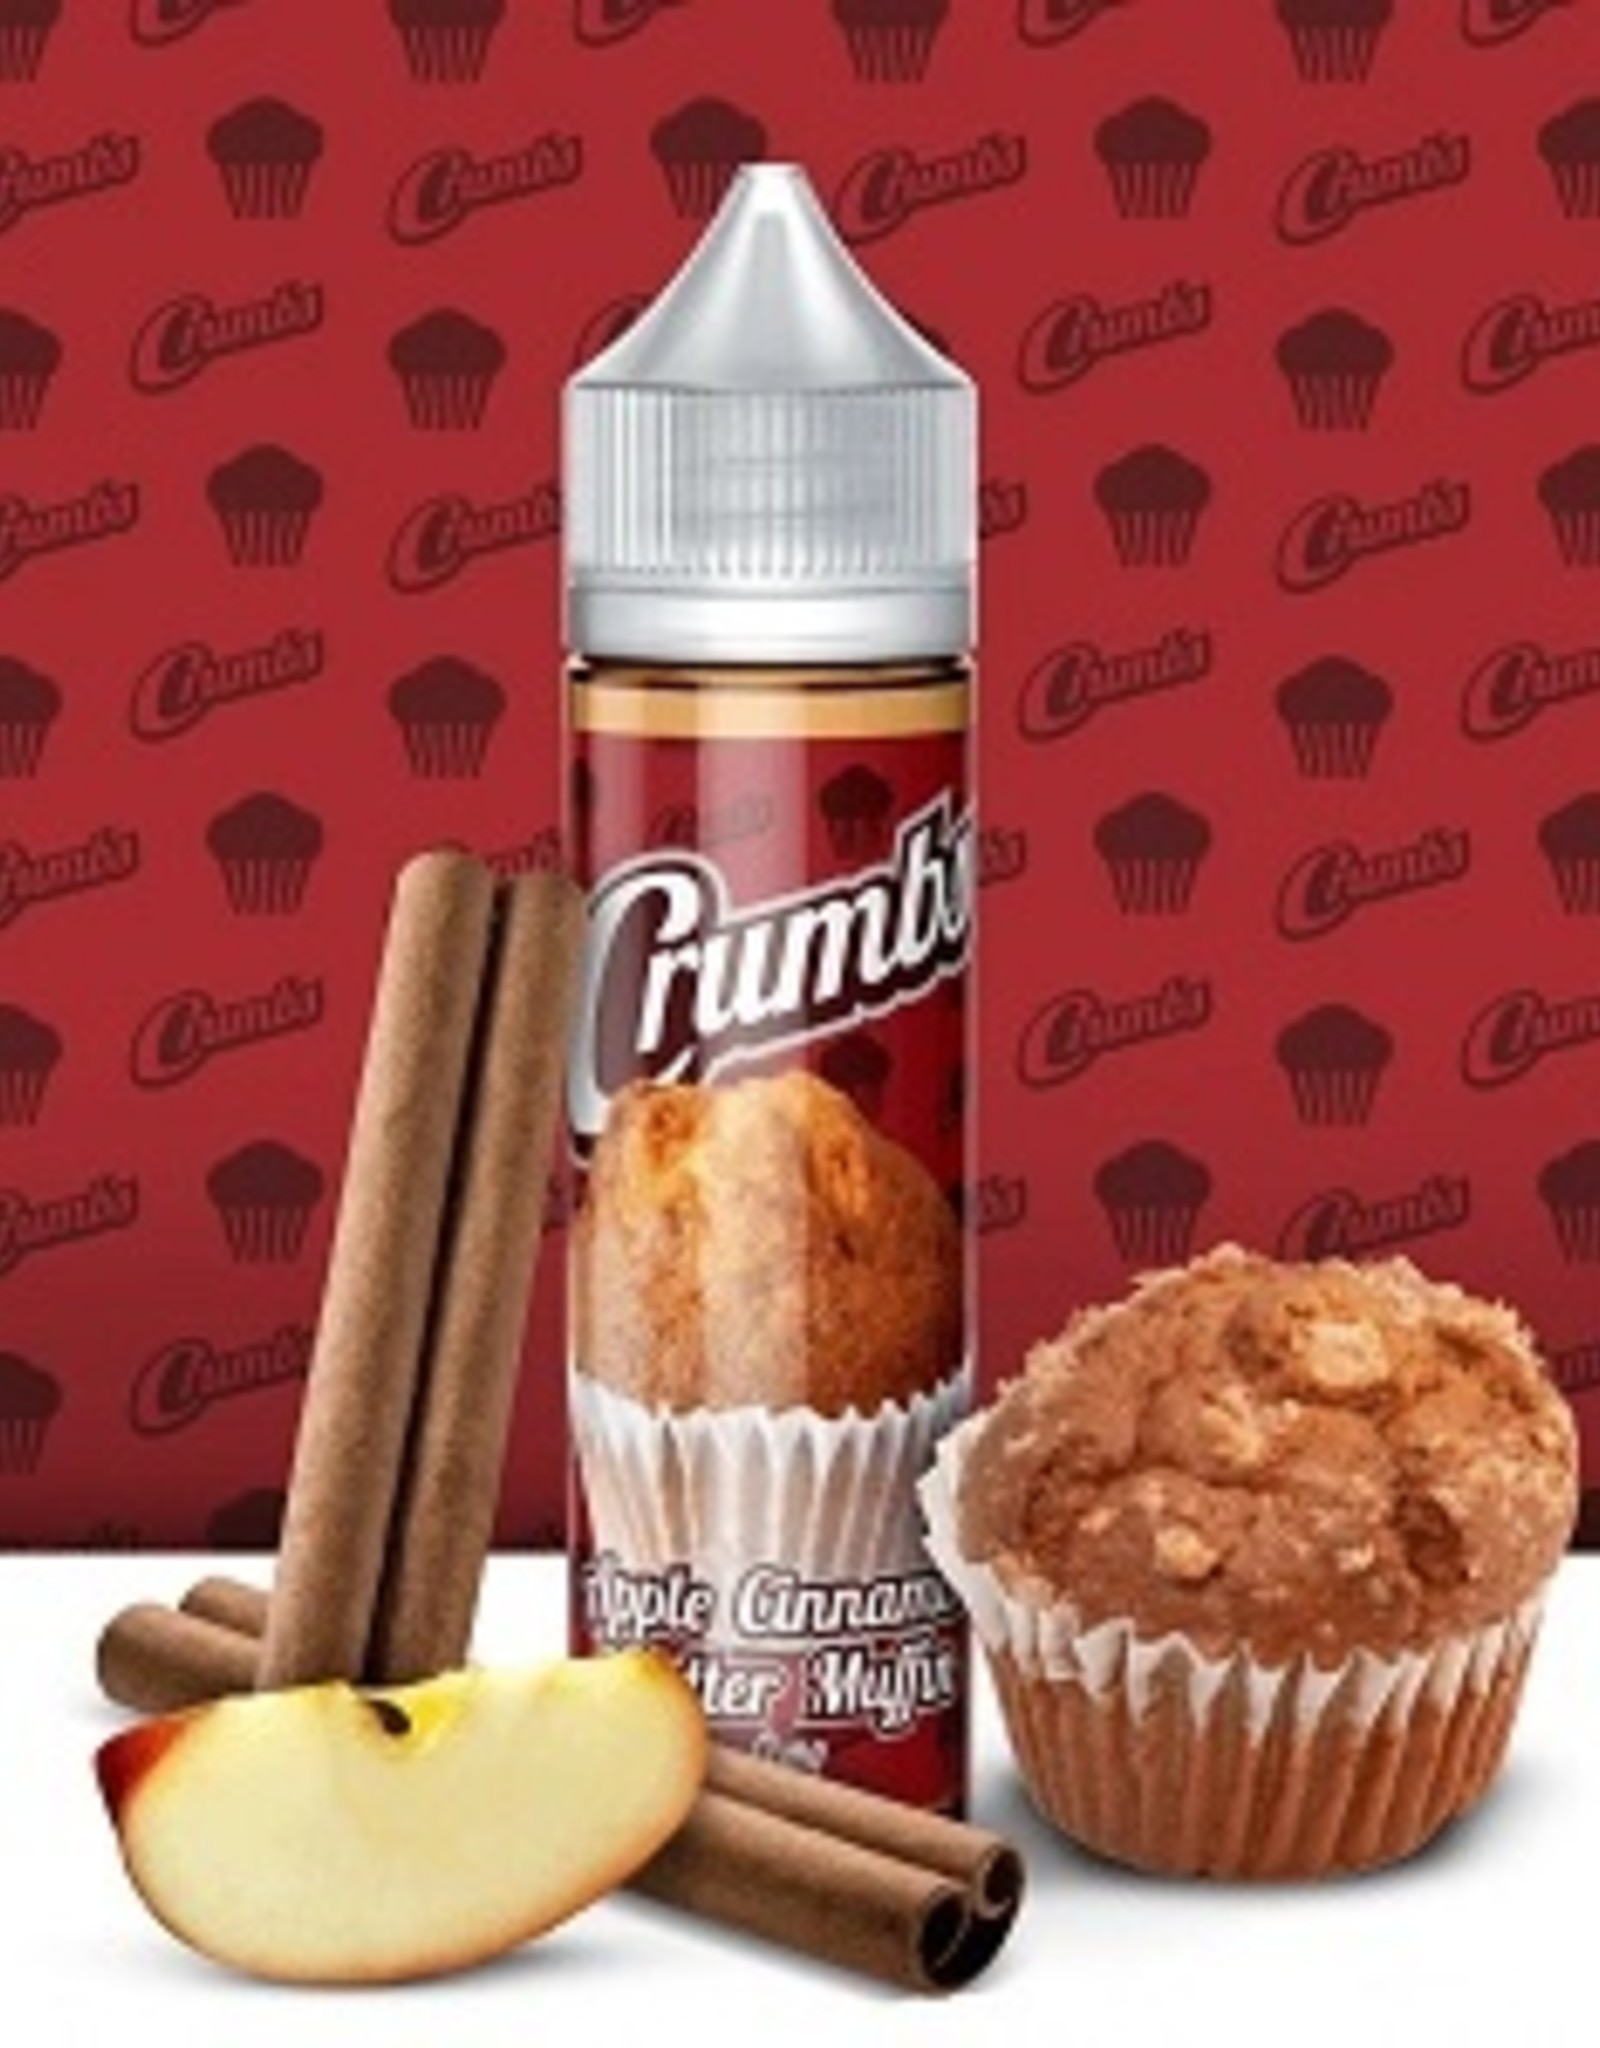 Apple Cinnamon Muffin By Crumbs